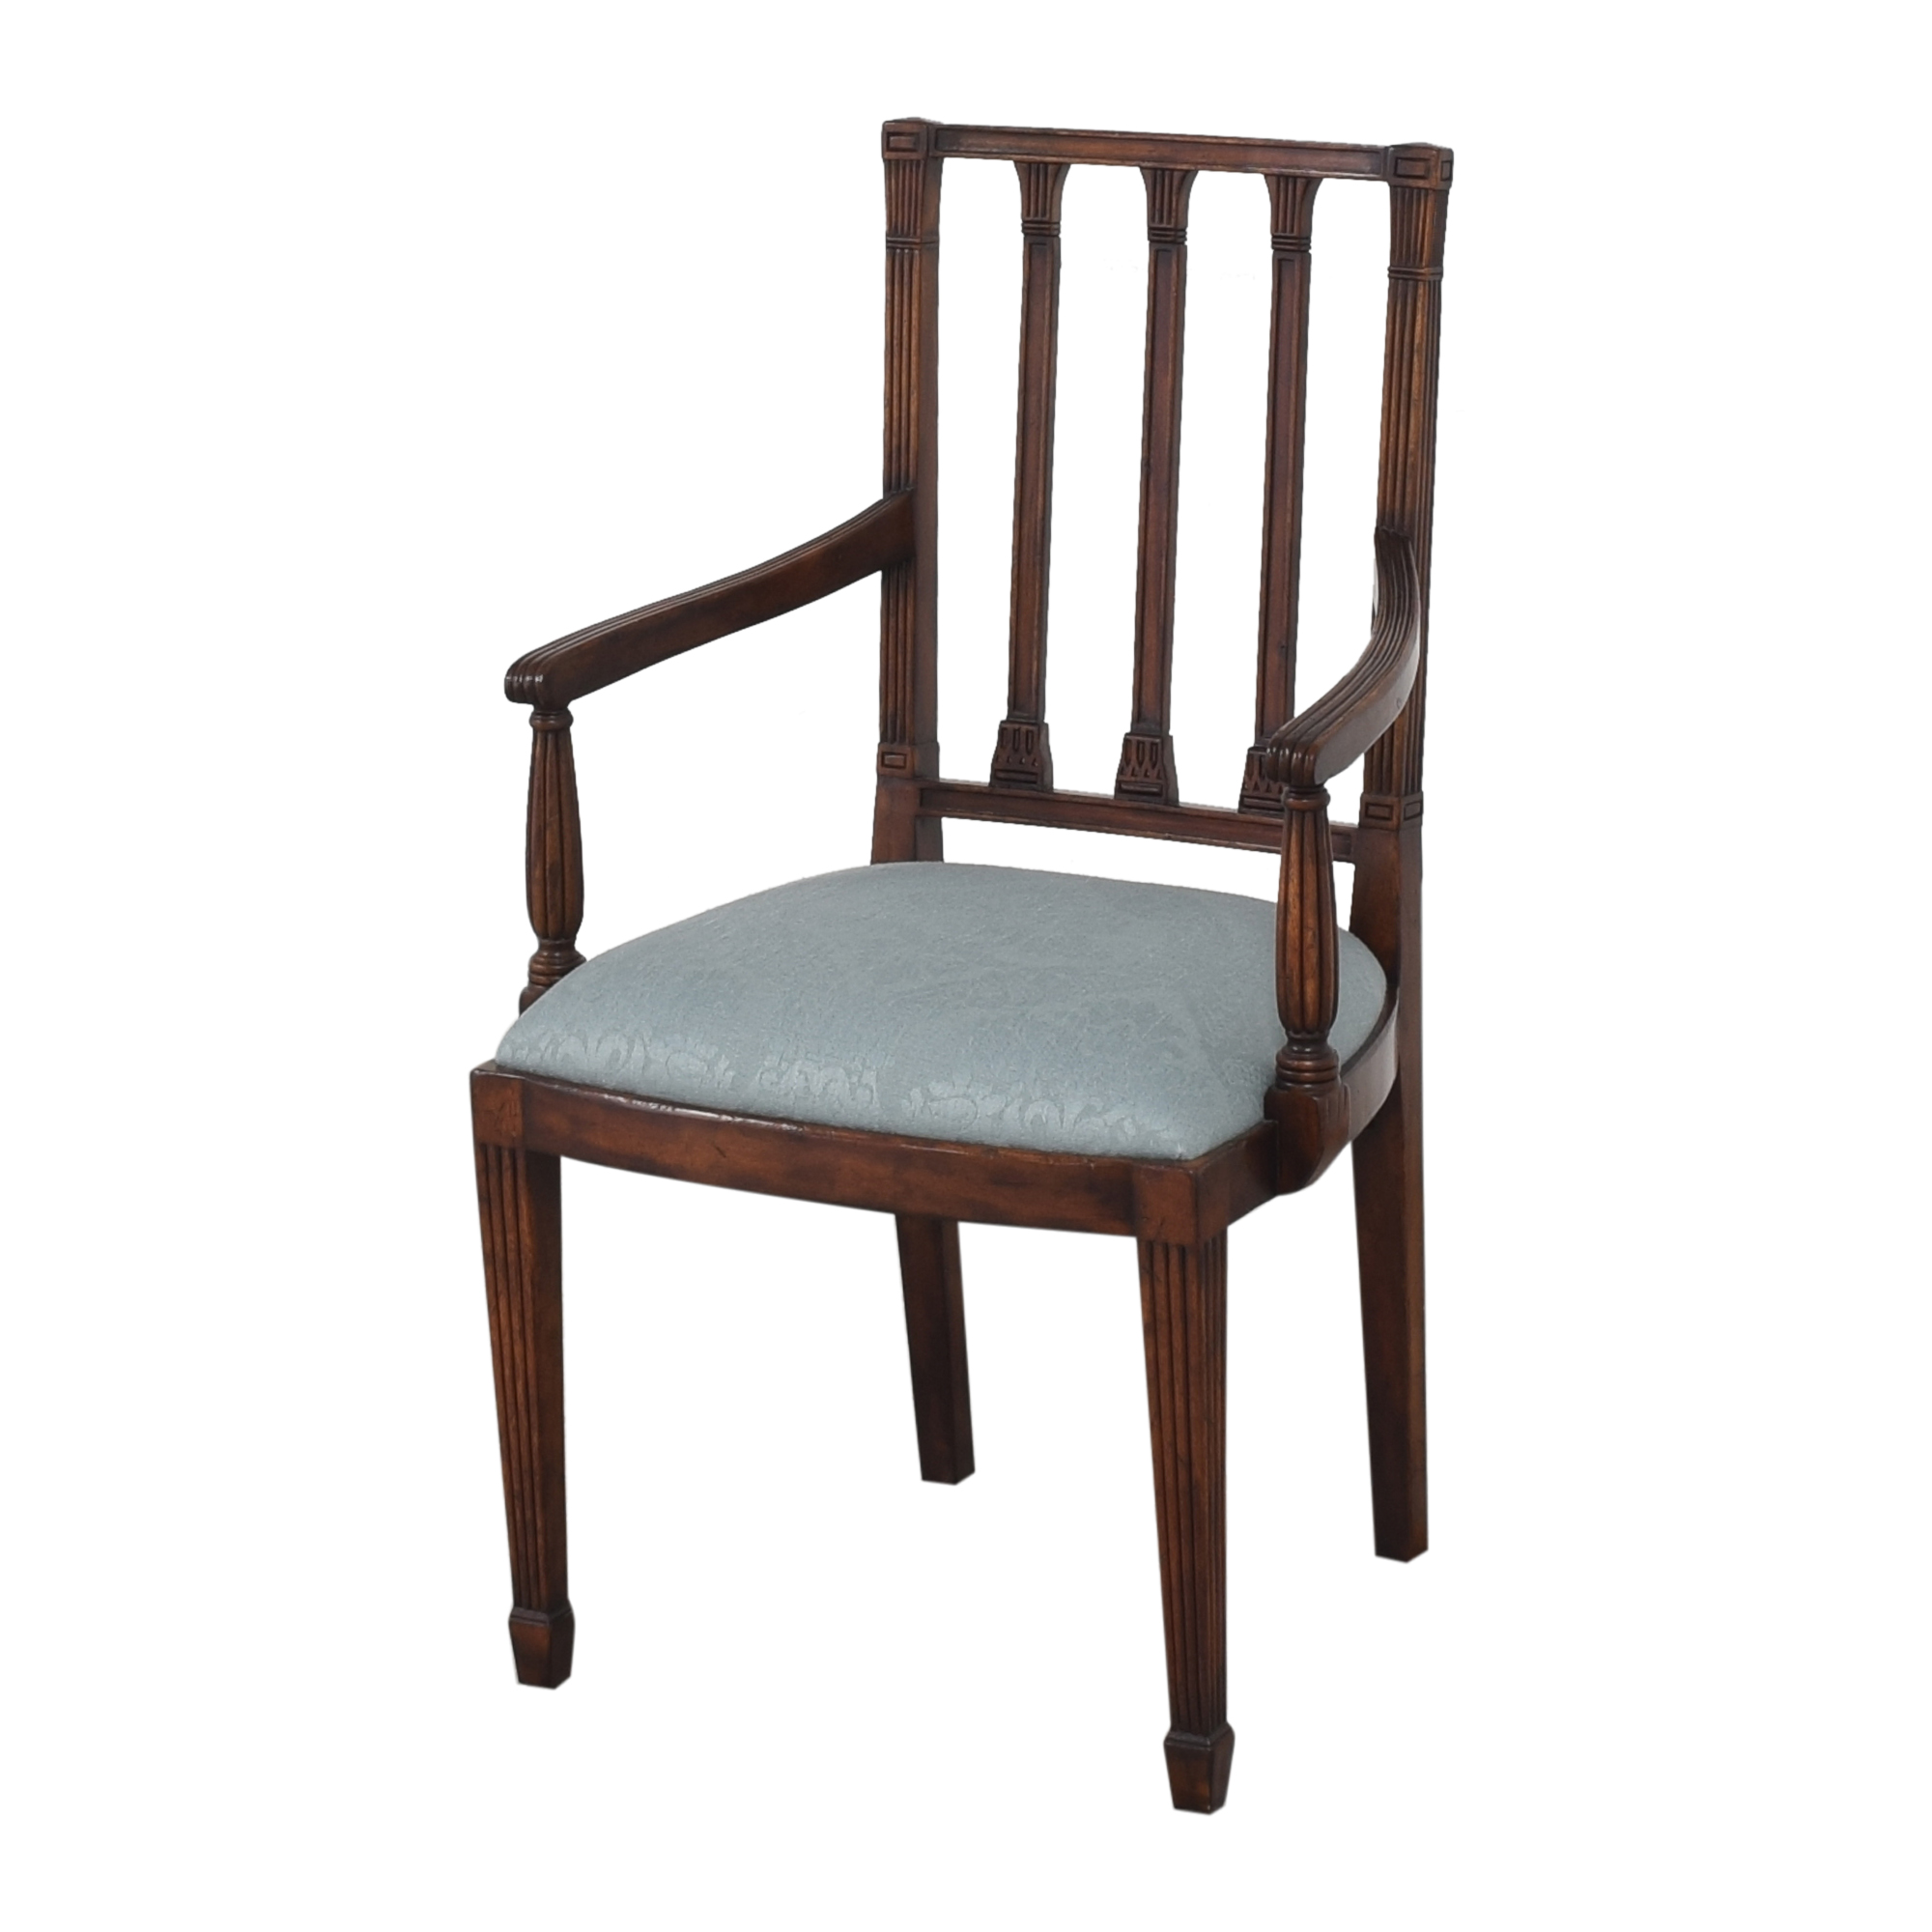 shop English Country Home English Country Home Upholstered Dining Arm Chairs online